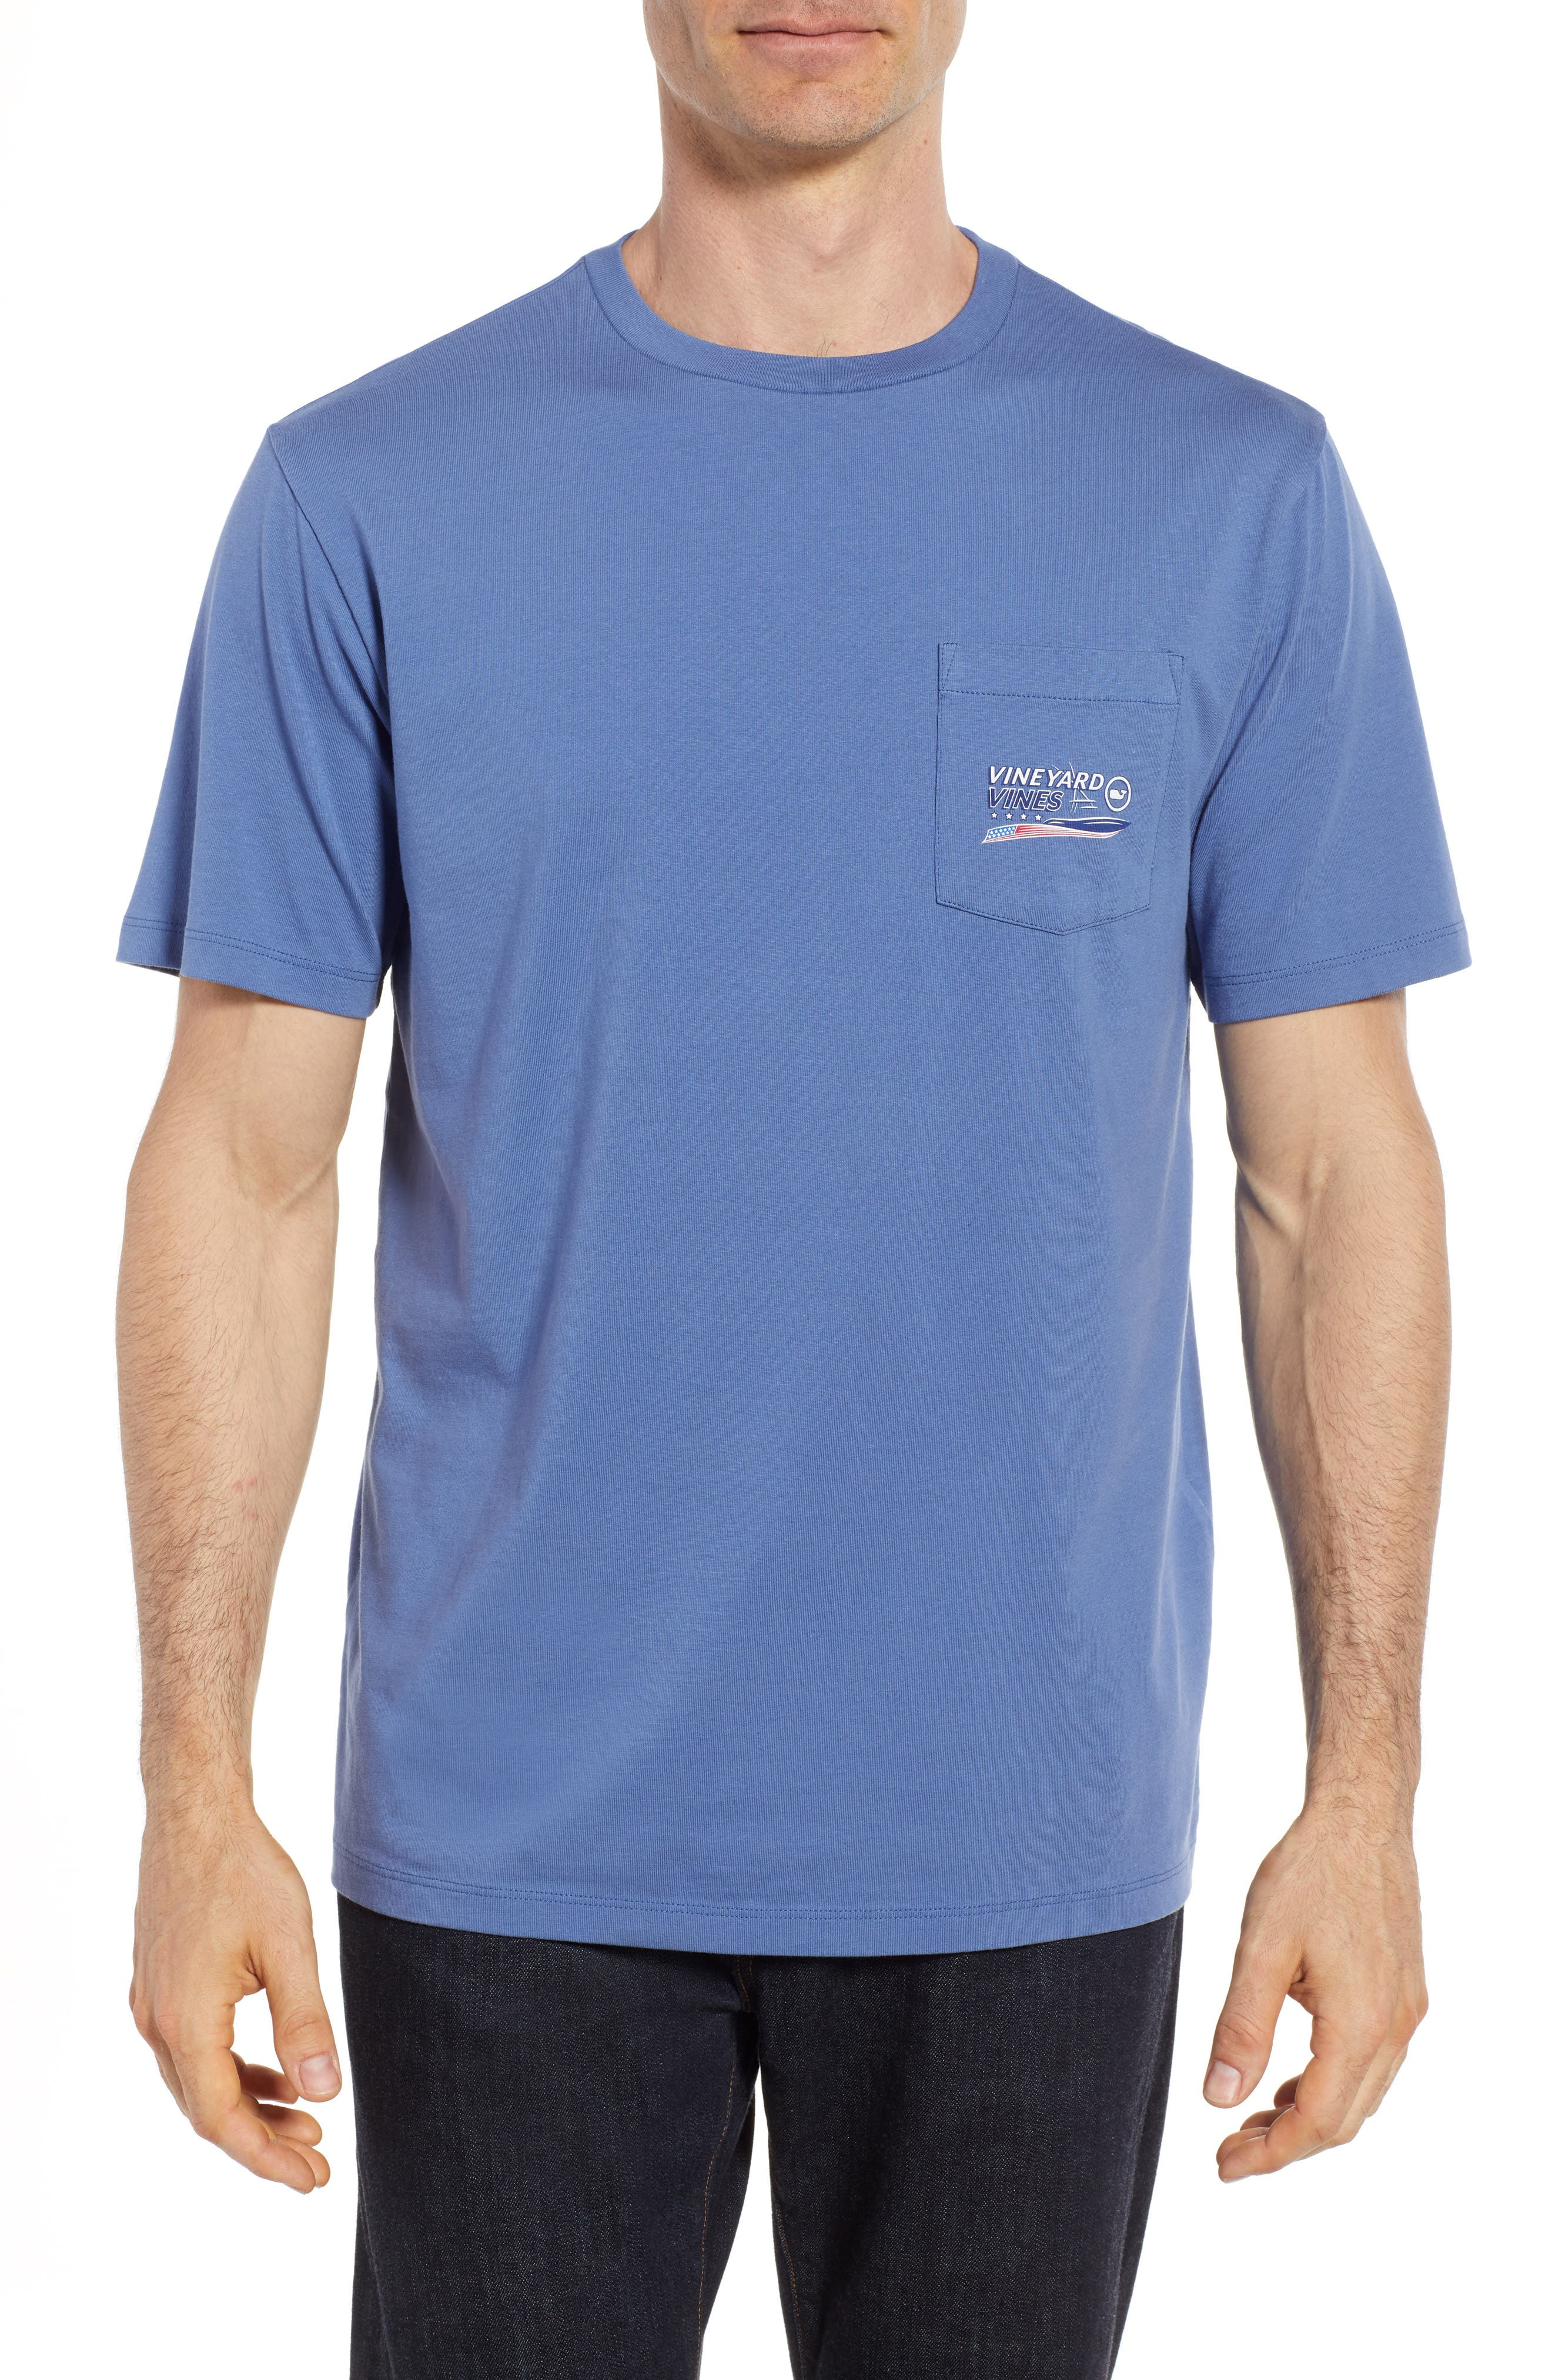 American Sportfisher T-Shirt,                         Main,                         color, 461